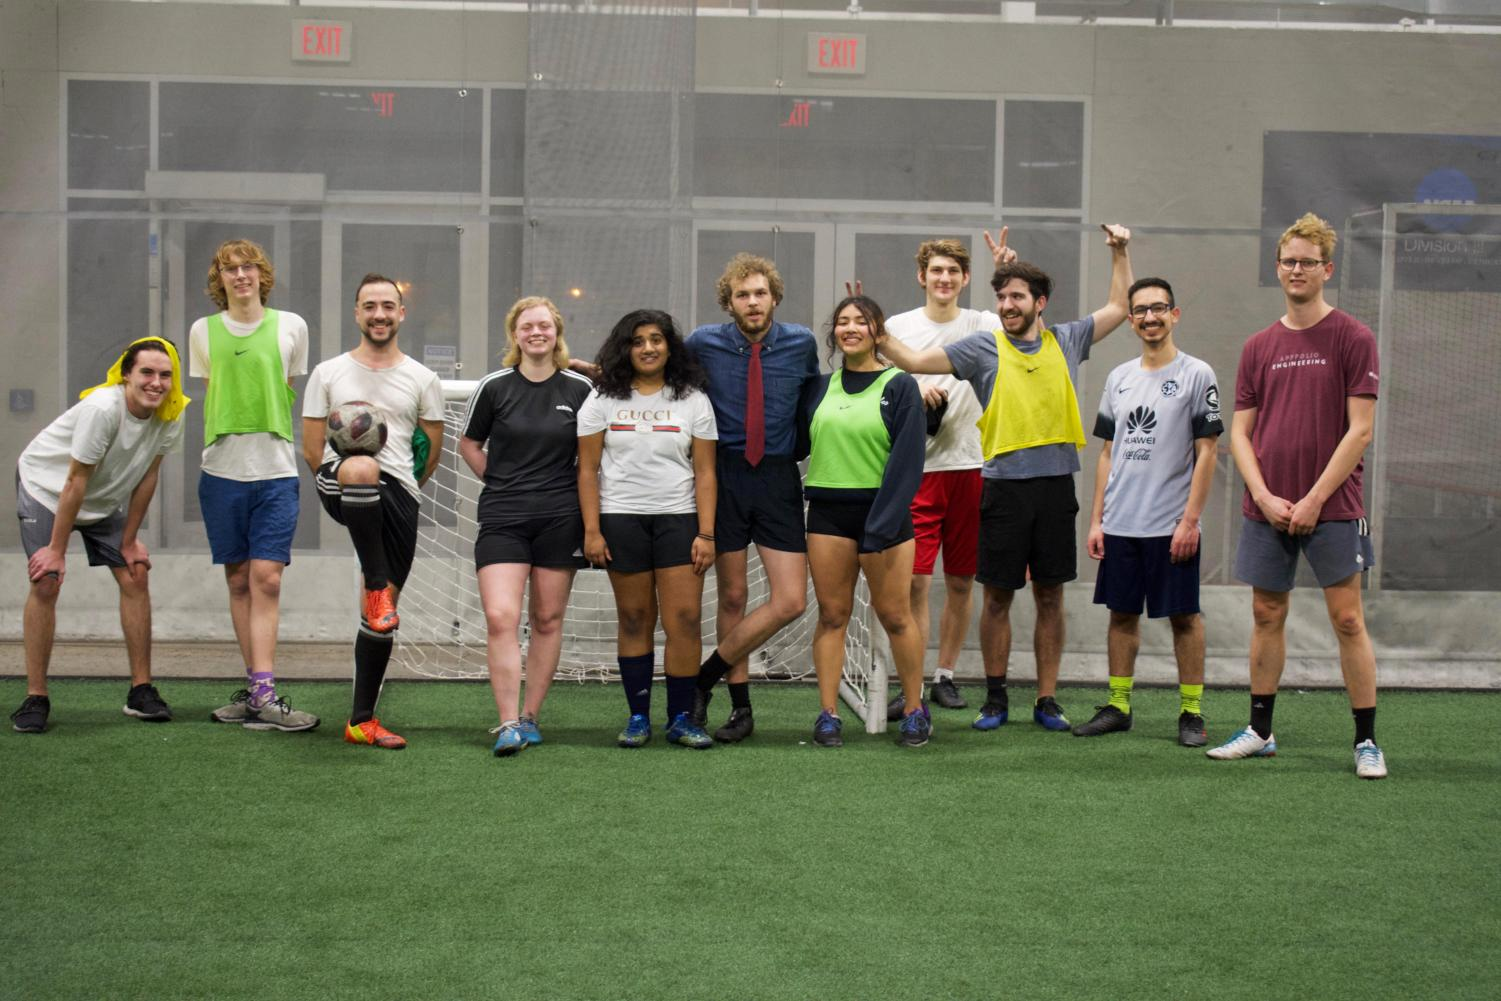 """On any given day, many of Oberlin's club sports teams that compete outside — such as club soccer, rugby, frisbee, and quidditch — can be found in North Fields.  However, North Fields becomes inaccessible with the arrival of Ohio's frigid winter months, when temperatures can drop below zero and snow and ice almost always covers the ground. To avoid the chill, club sports teams will often move their practices into Williams Field House. The space is also used by varsity sports teams, which take priority. As a result, some club sports frequently start practice as late as midnight — like the club soccer team pictured above.  """"Late night soccer is great because the energy is different from our regular [afternoon] practices,"""" said Laila Telles, College fourth-year and club soccer team captain. """"I think everyone feels more loose and comfortable and we all laugh even more than usual. [The fact] that we will play soccer at any time of day shows how dedicated we are."""""""